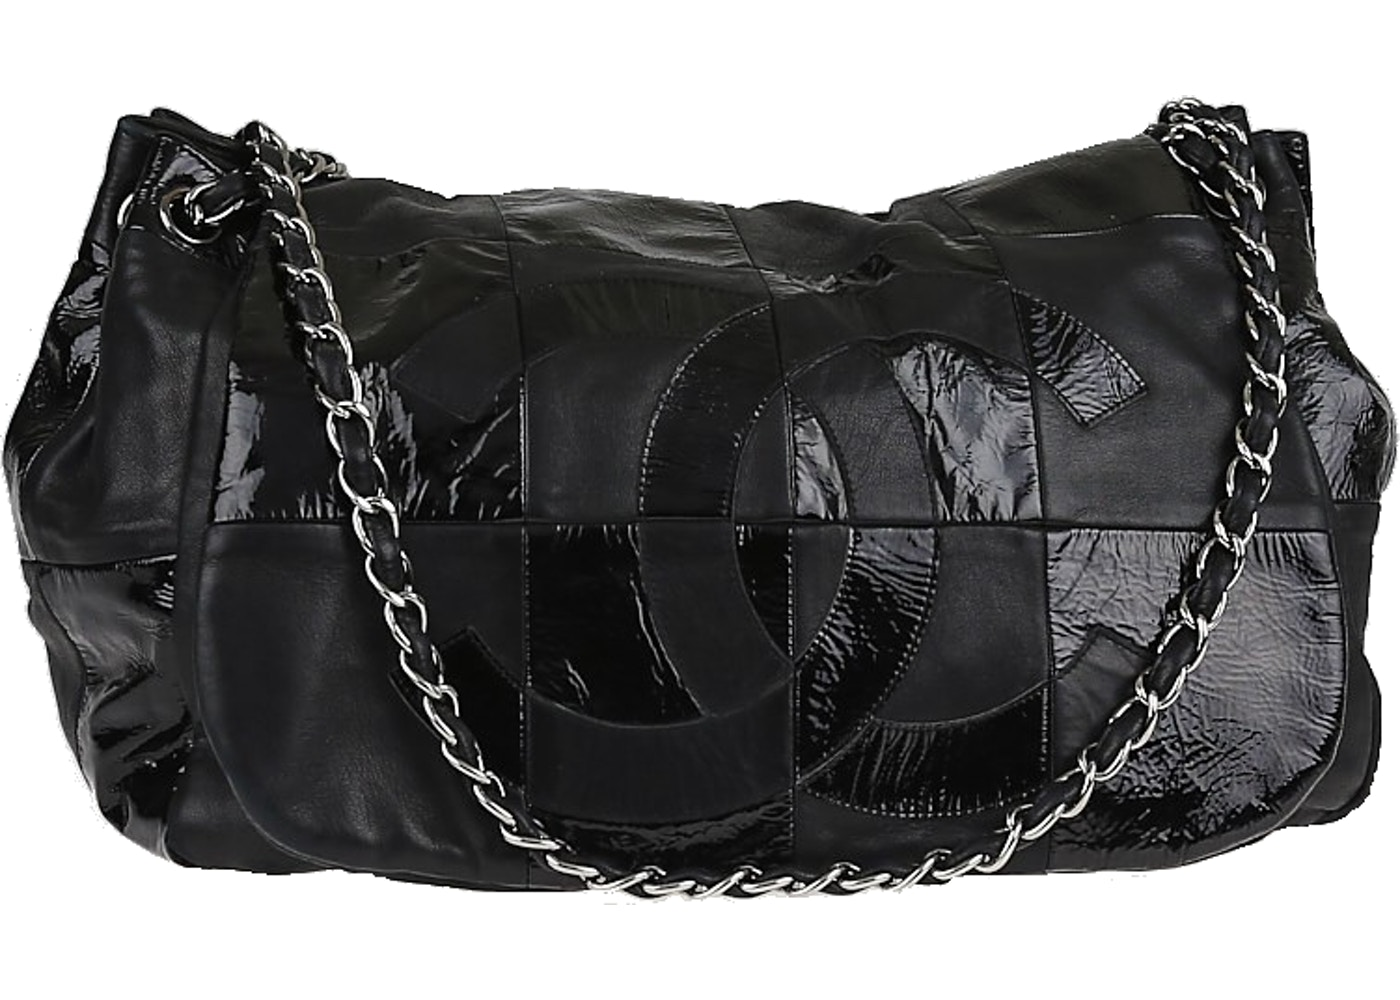 41879fe4ced1 Sell. or Ask. View All Bids. Chanel Accordion Flap Brooklyn Ligne Patchwork  Black